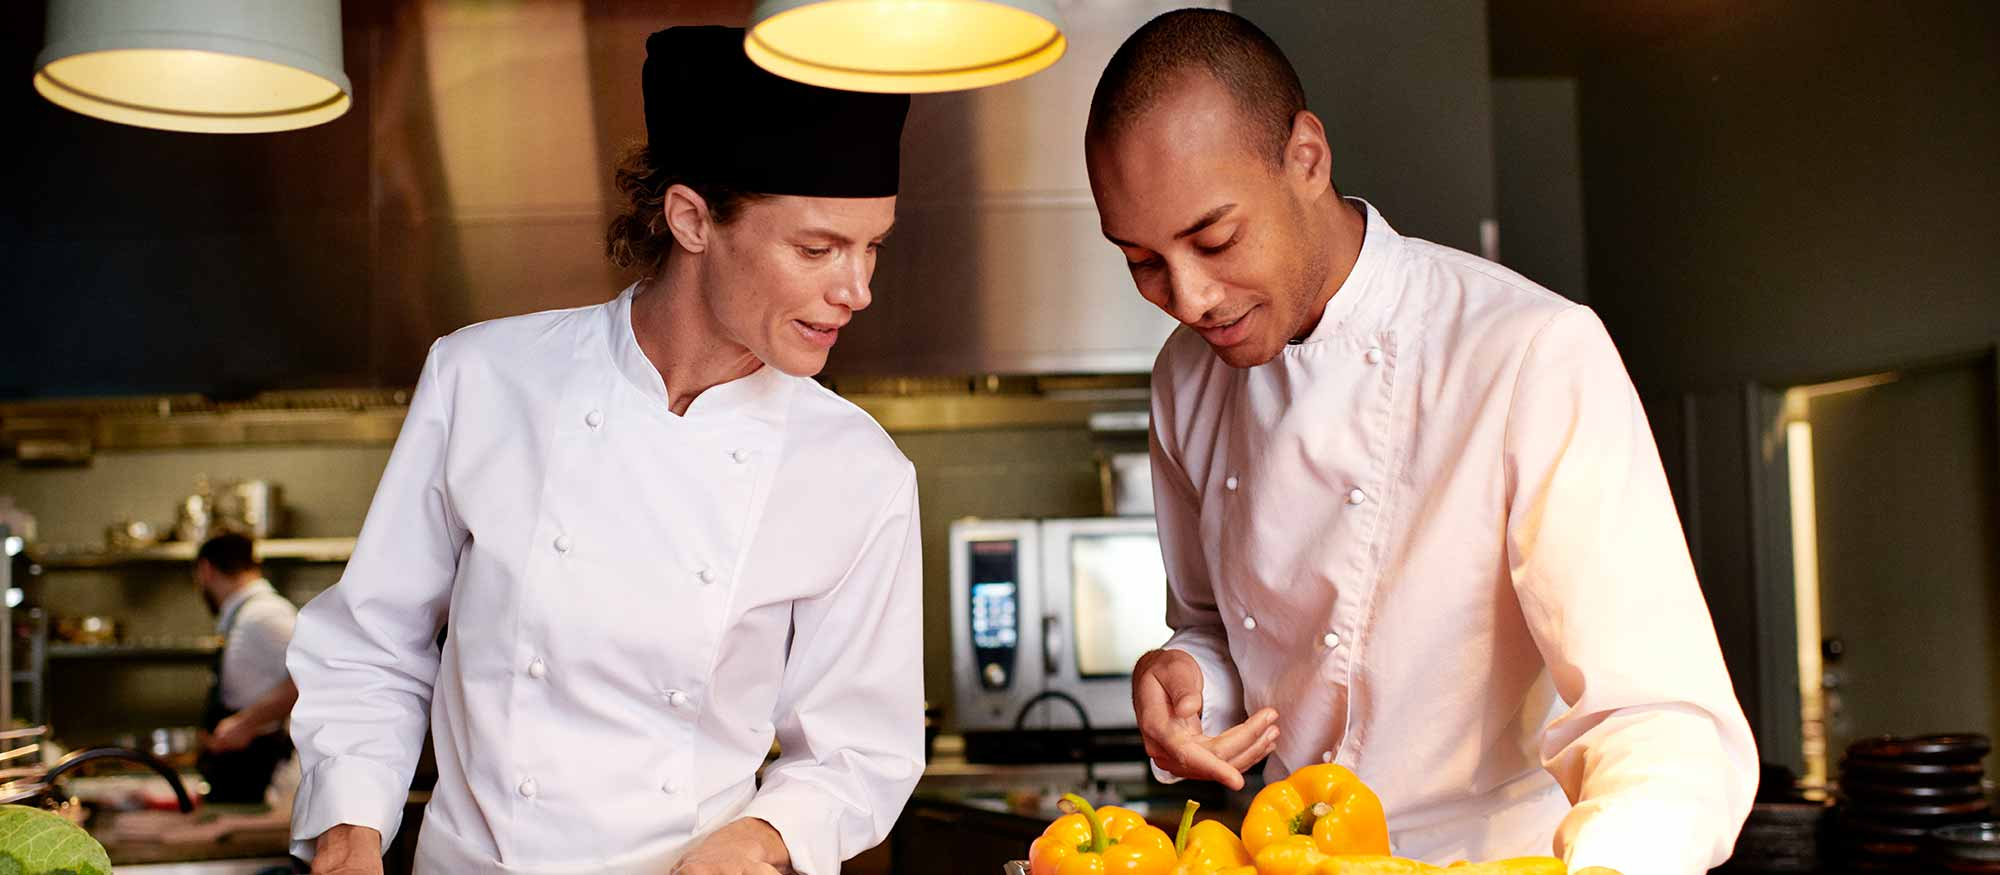 Two chefs in a restaurant kitchen